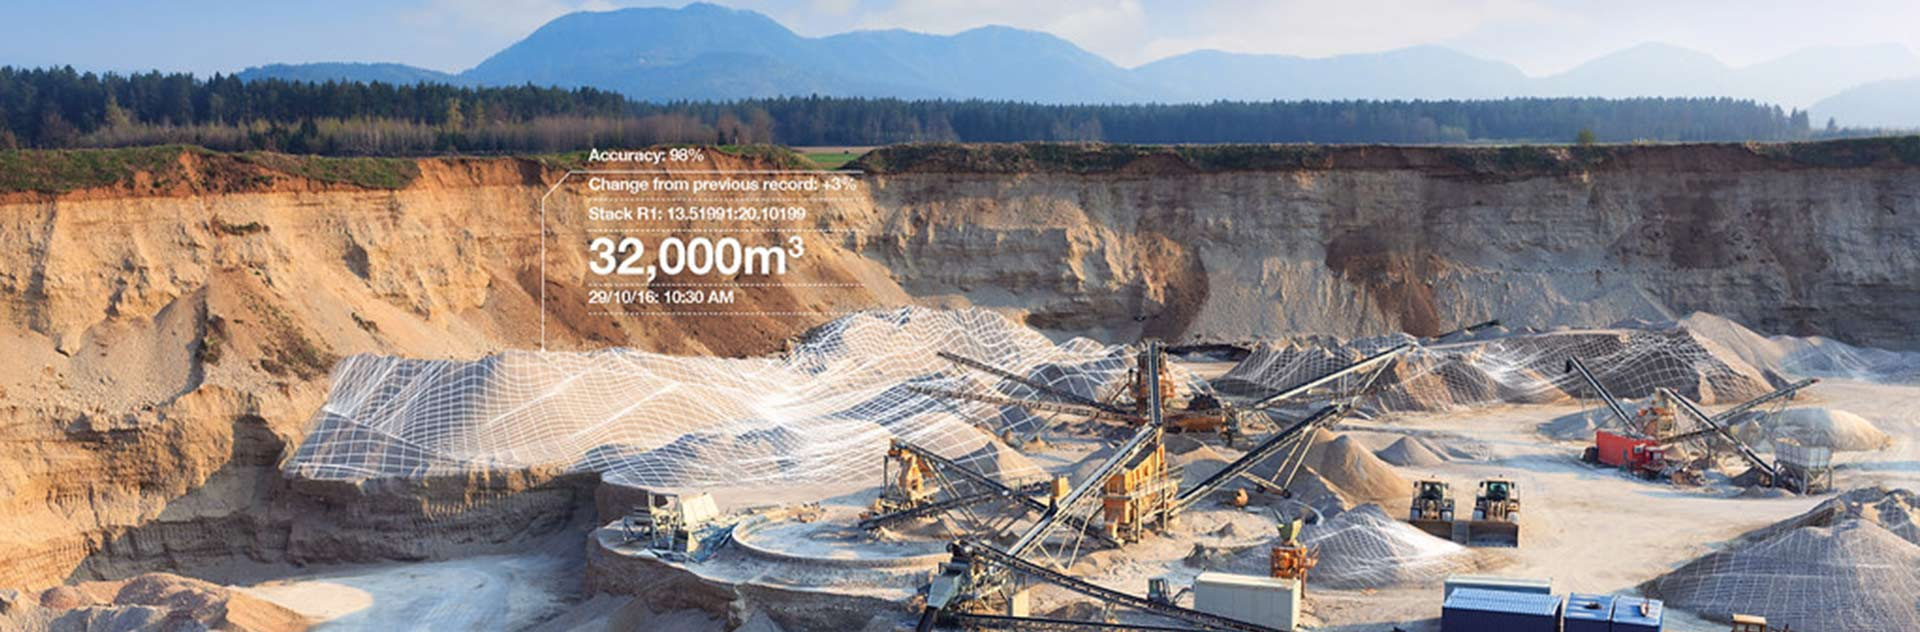 Remote monitoring of mines and stack calculations